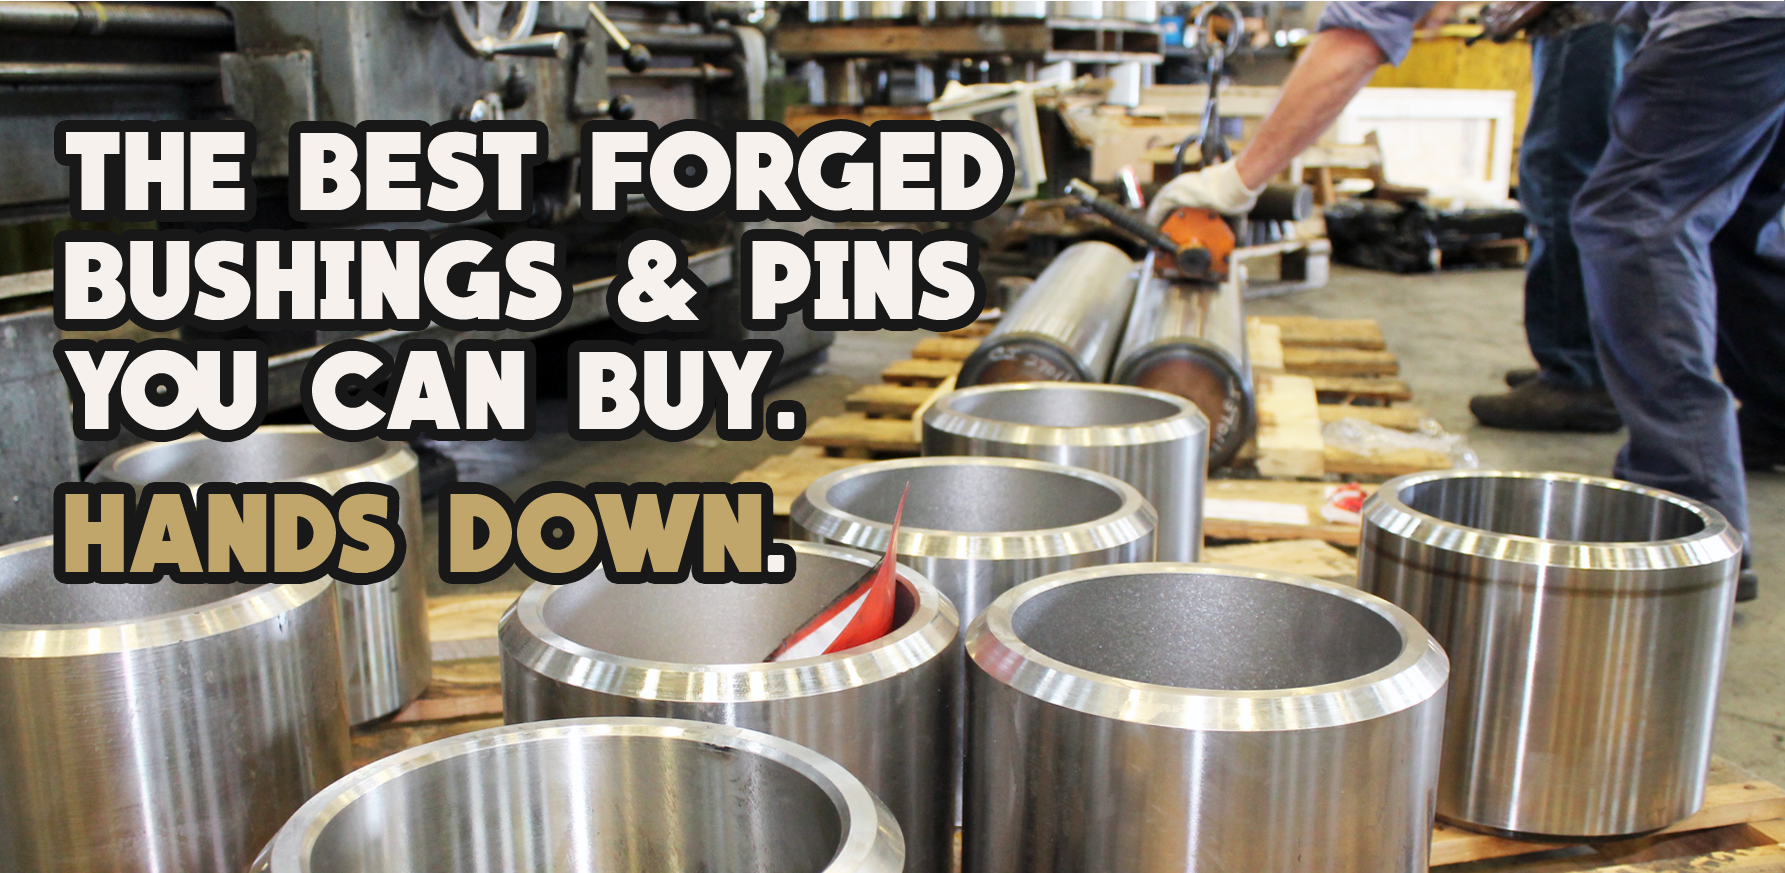 Best Forged Bushings and Pins from Wescott Steel